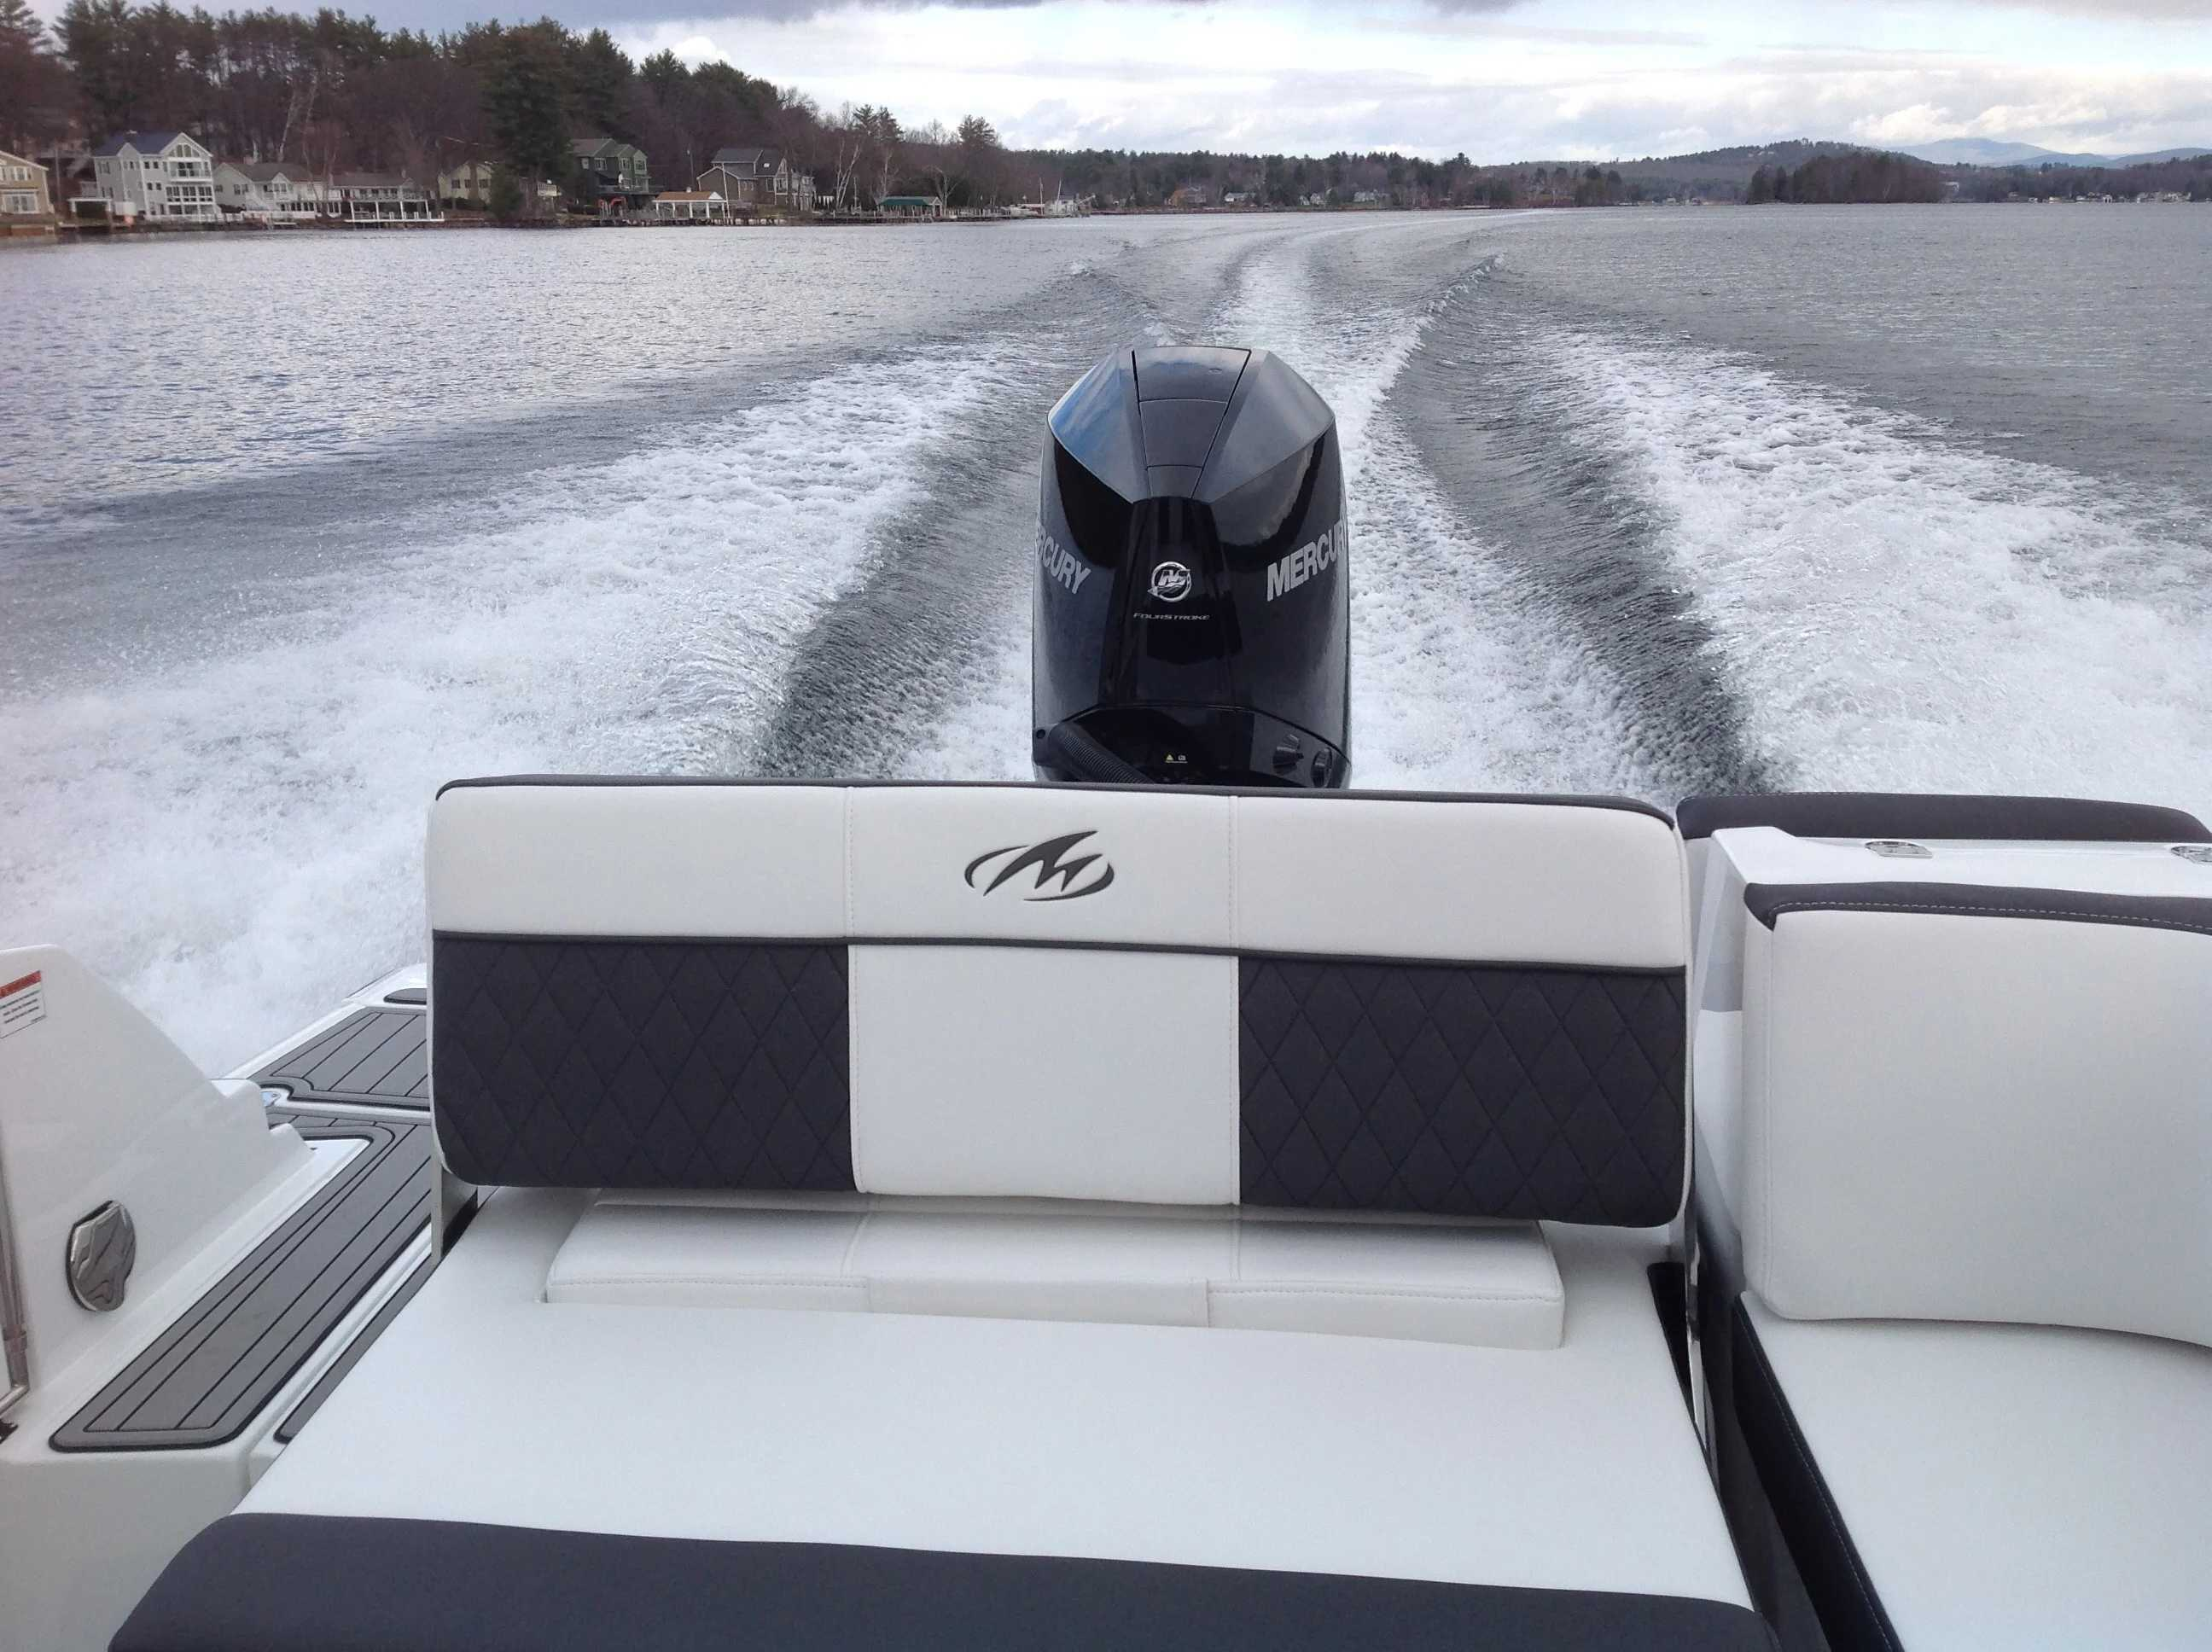 2021 Monterey boat for sale, model of the boat is M45 & Image # 20 of 21